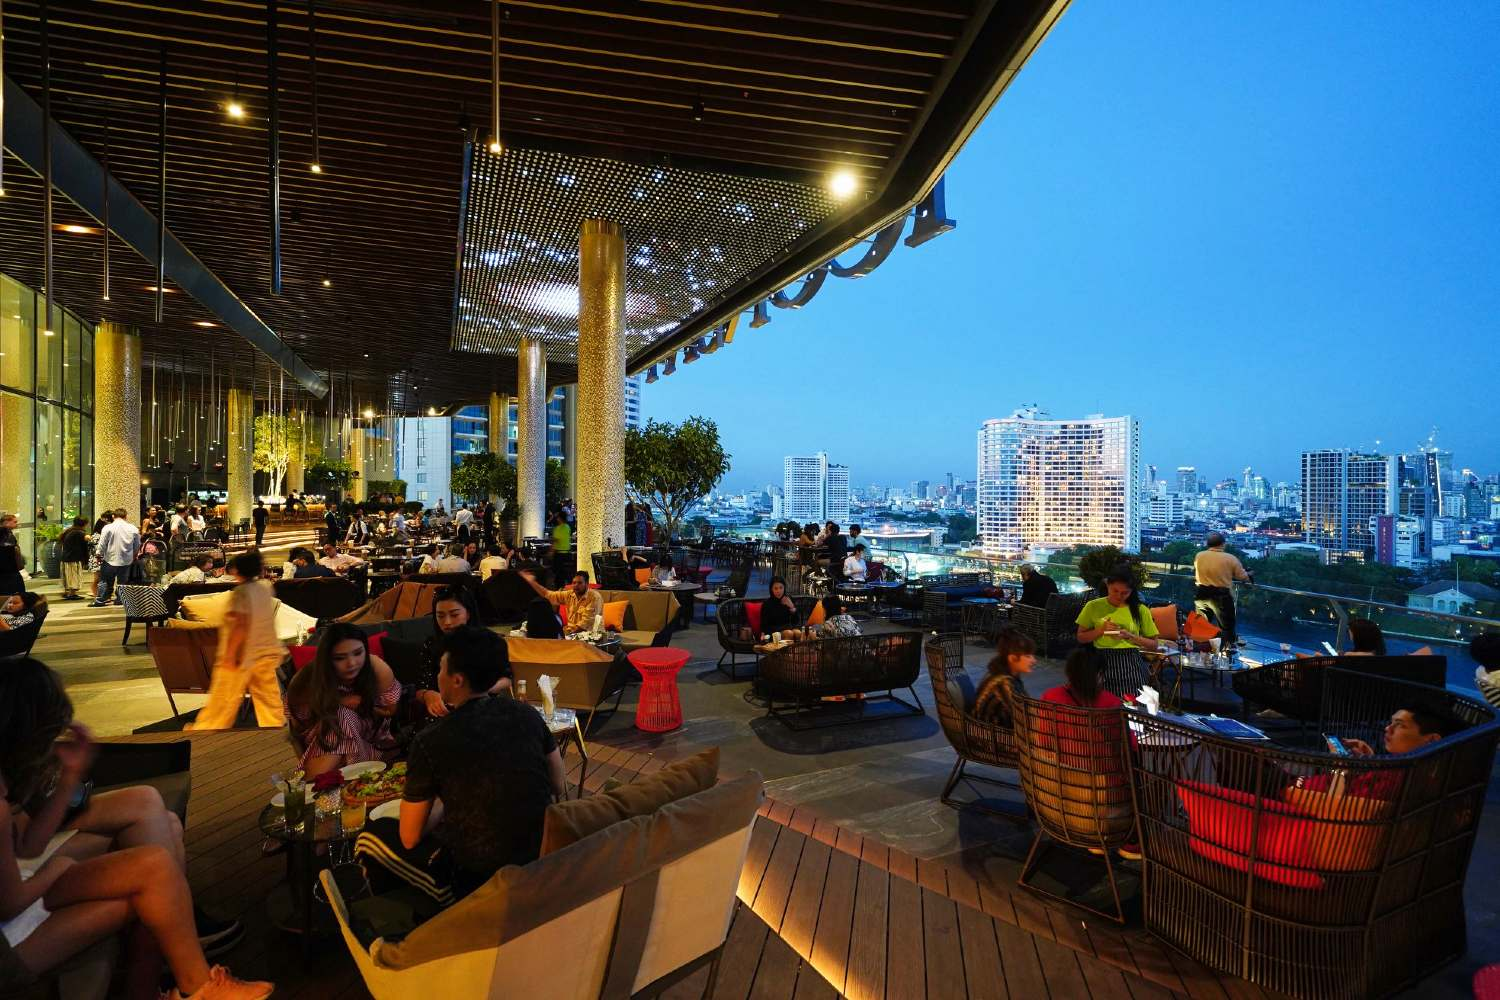 The Tasana Nakorn terrace on the sixth floor of ICONSIAM